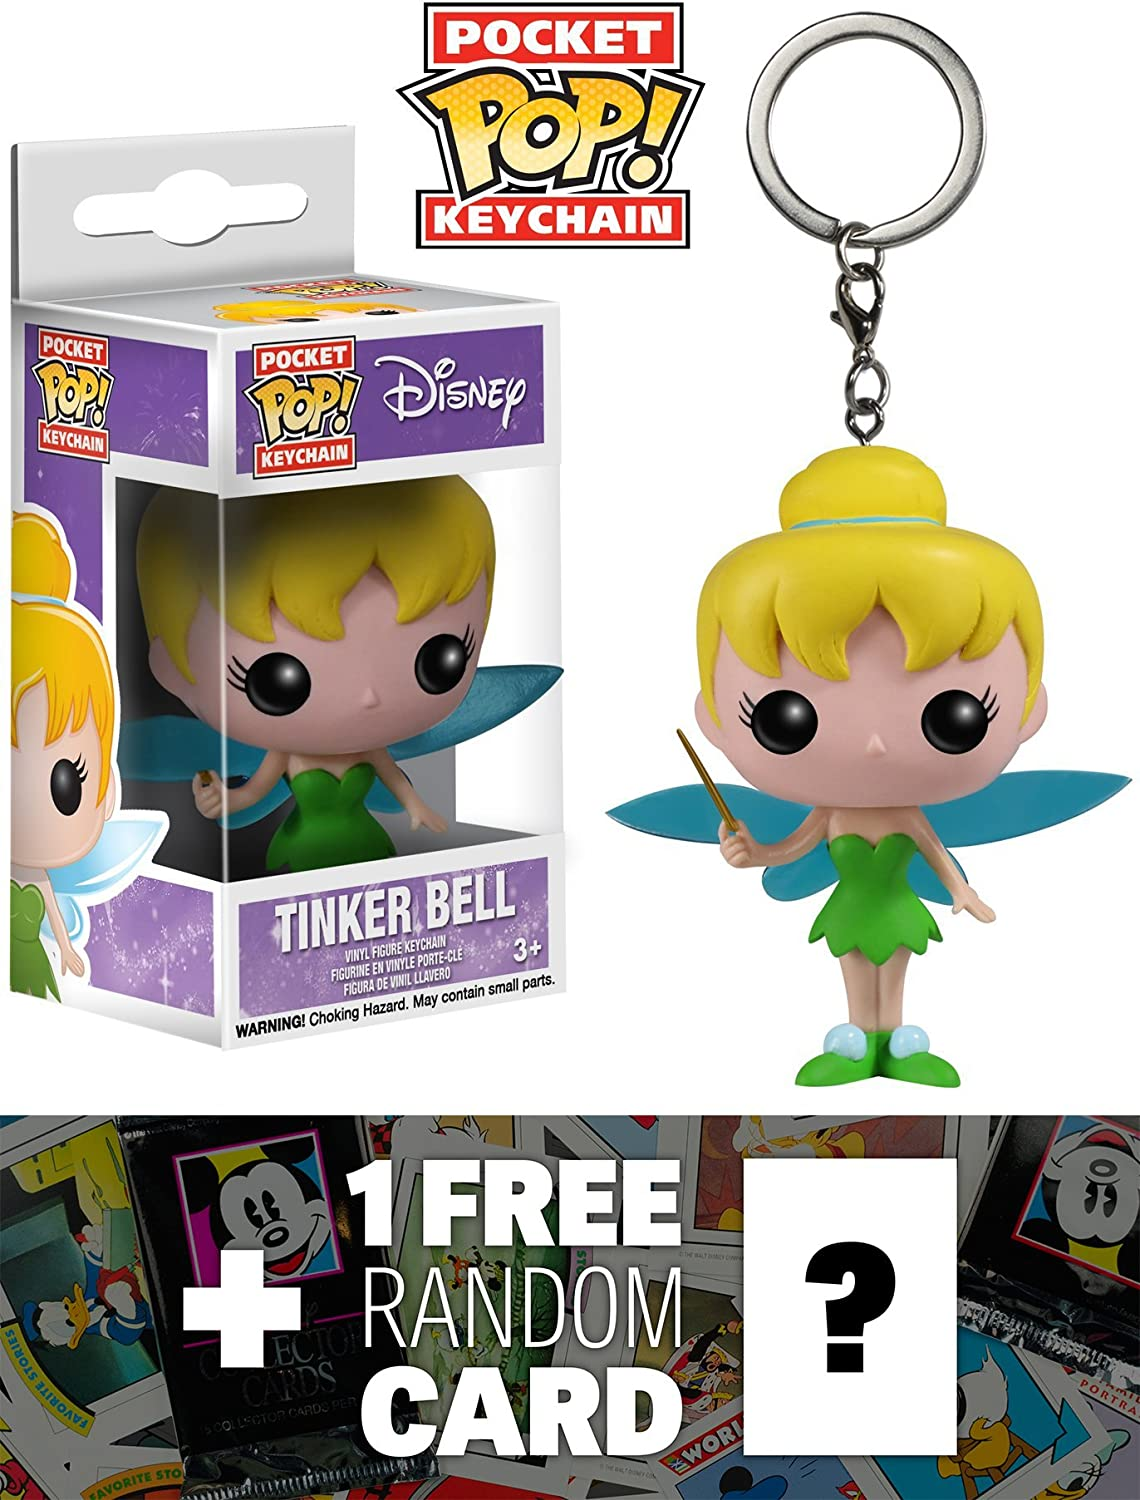 Amazon.com: Tinker Bell: Pocket POP! Keychain x Disney ...